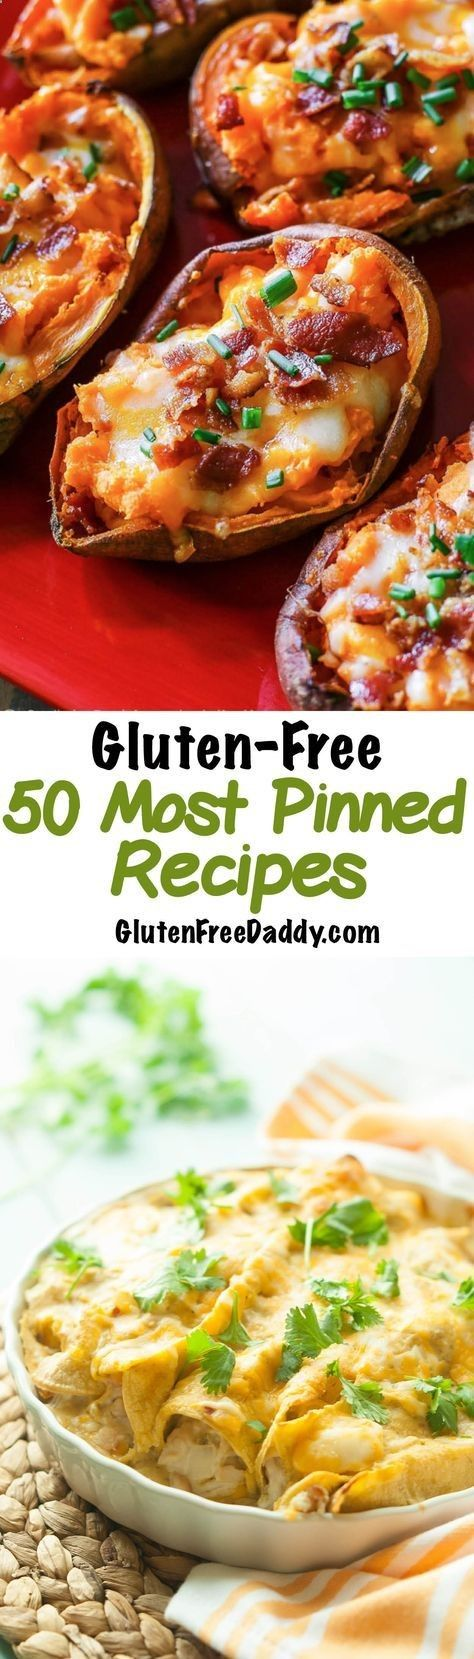 The 50 Most Pinned Gluten Free Recipes - I cant believe these are all gluten free! There are so many good options on this page - and you know if they have been pinned at least 50,000 times then they must be good.